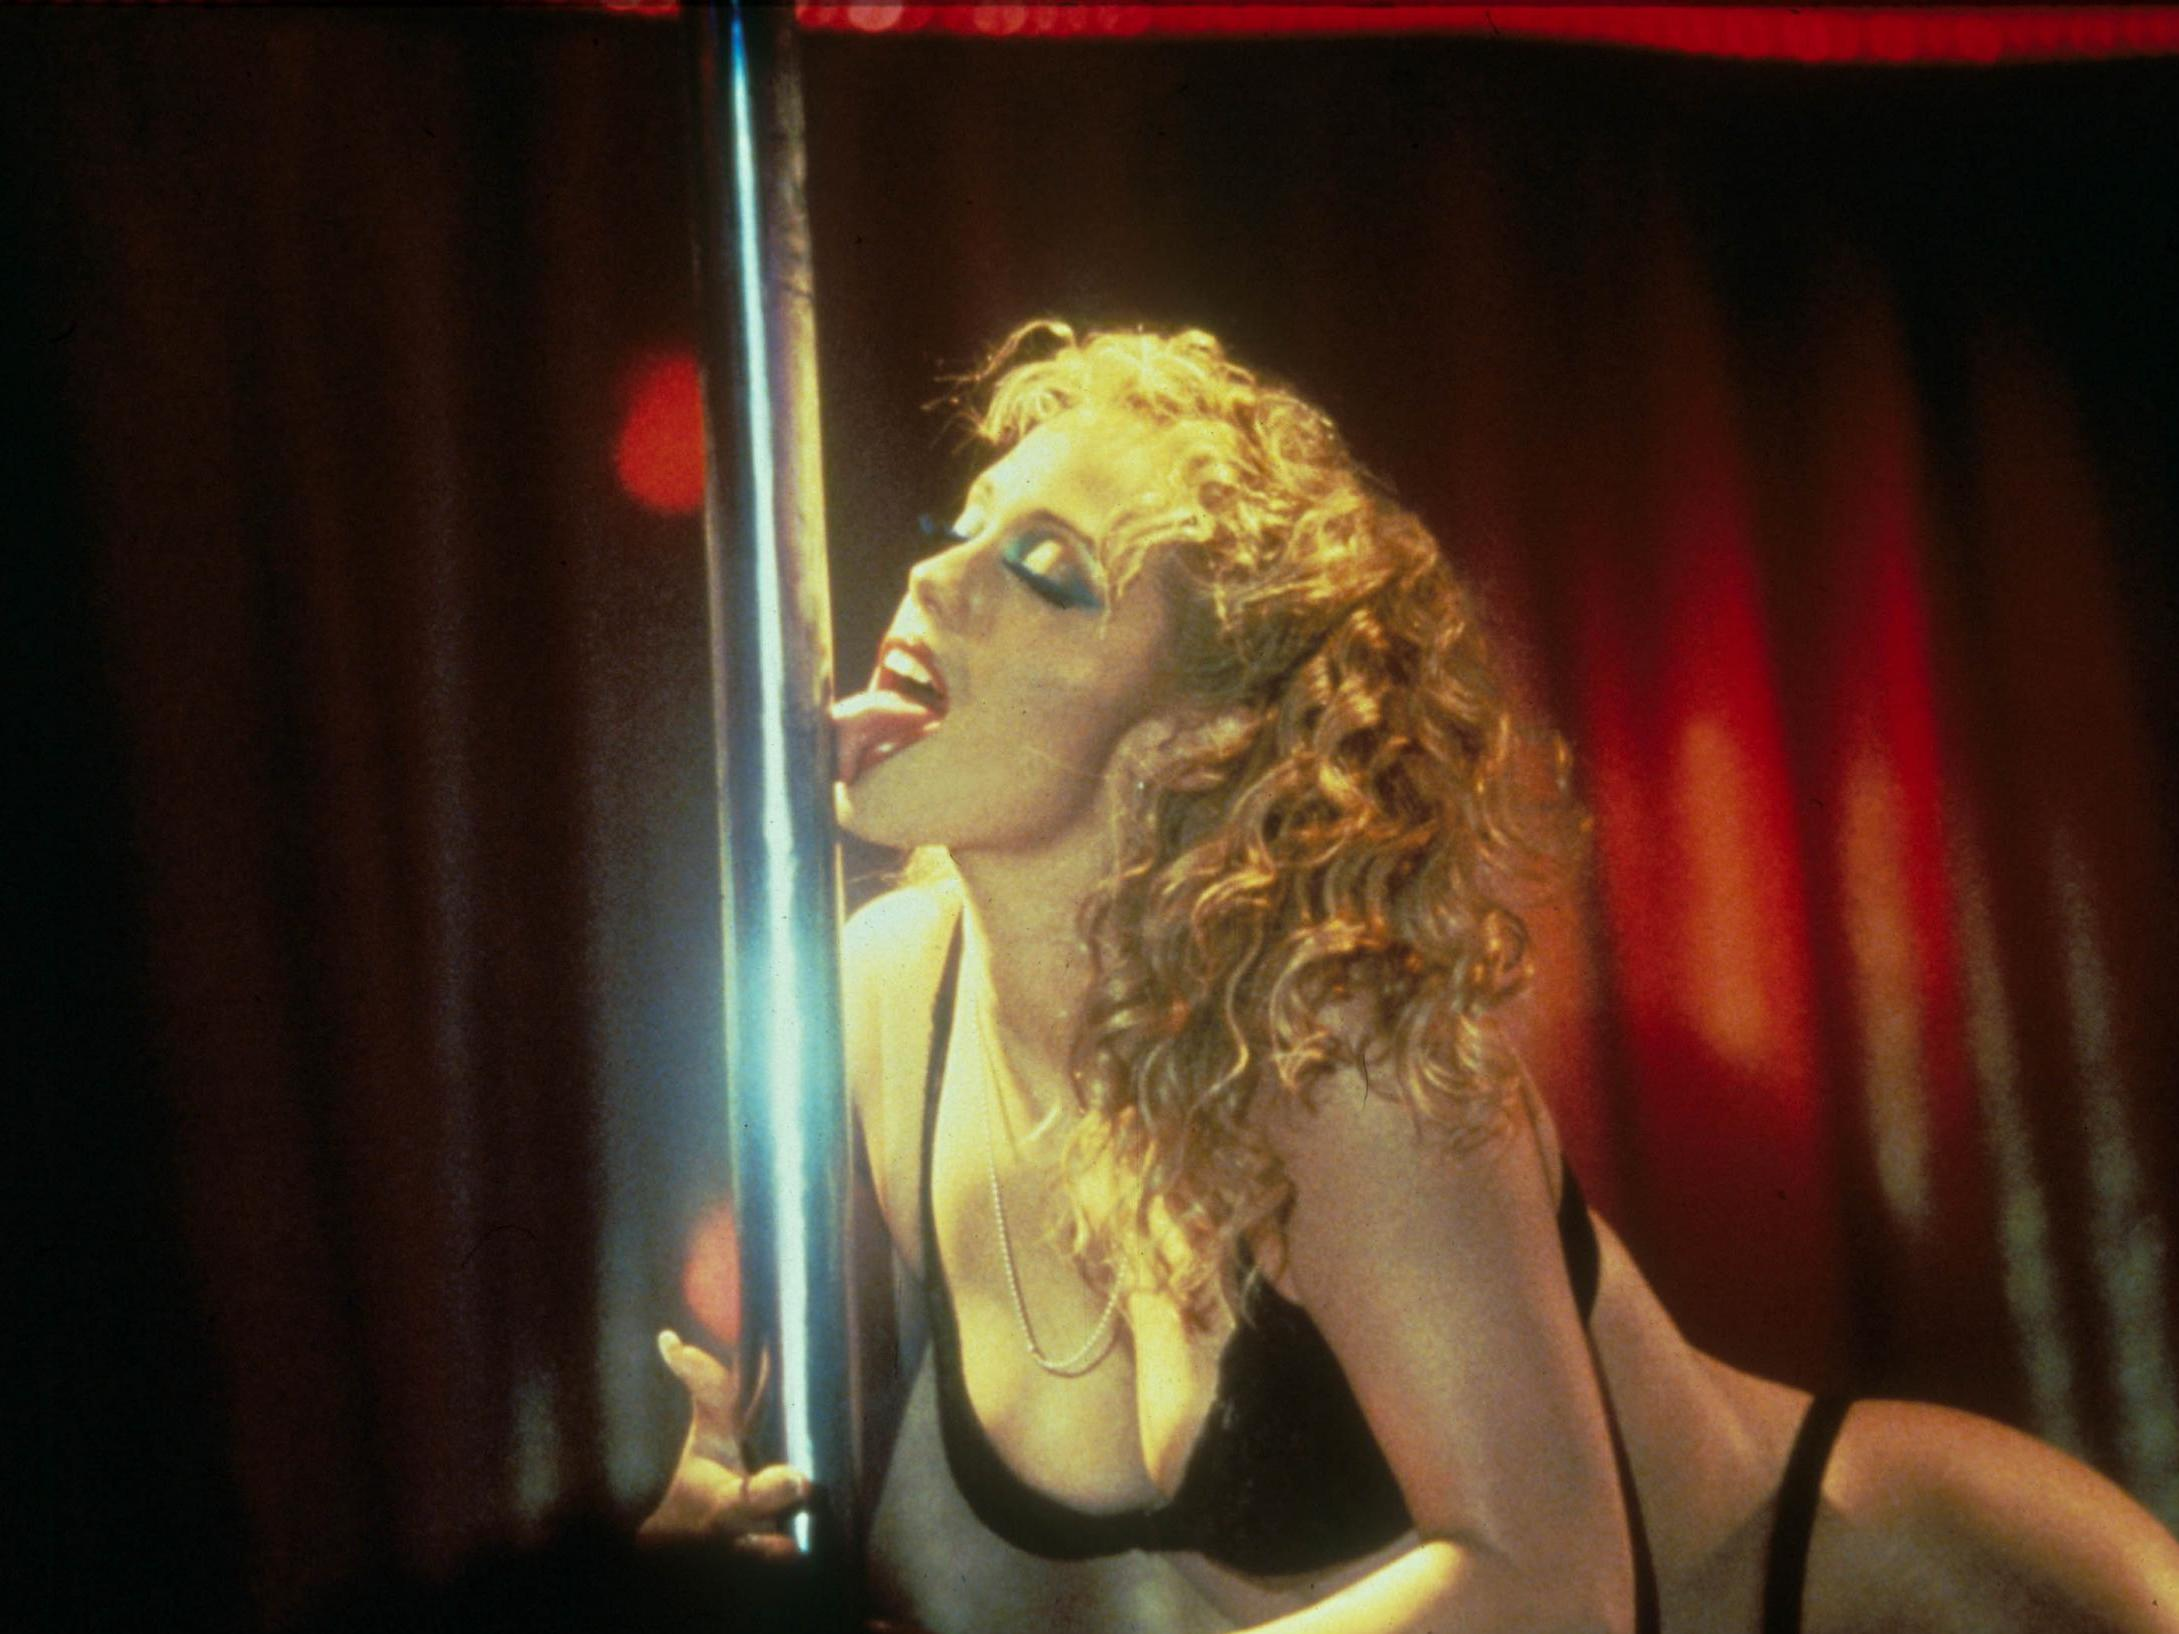 The remarkable resurrection of Showgirls, the worst movie ever made